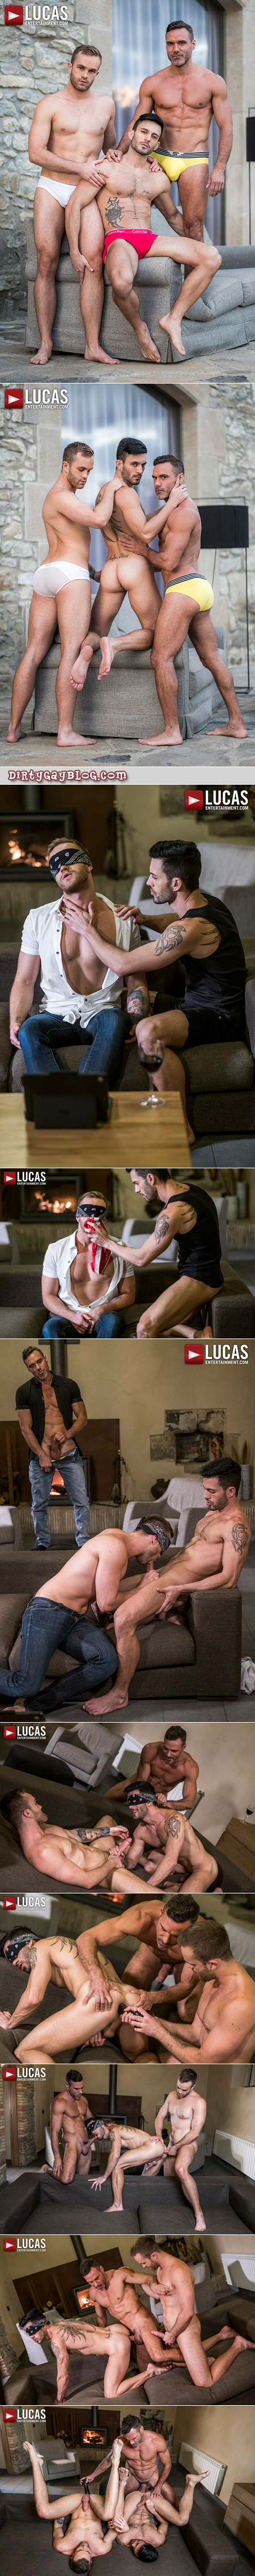 Muscle Daddy fucks two younger guys he finds having gay sex together.